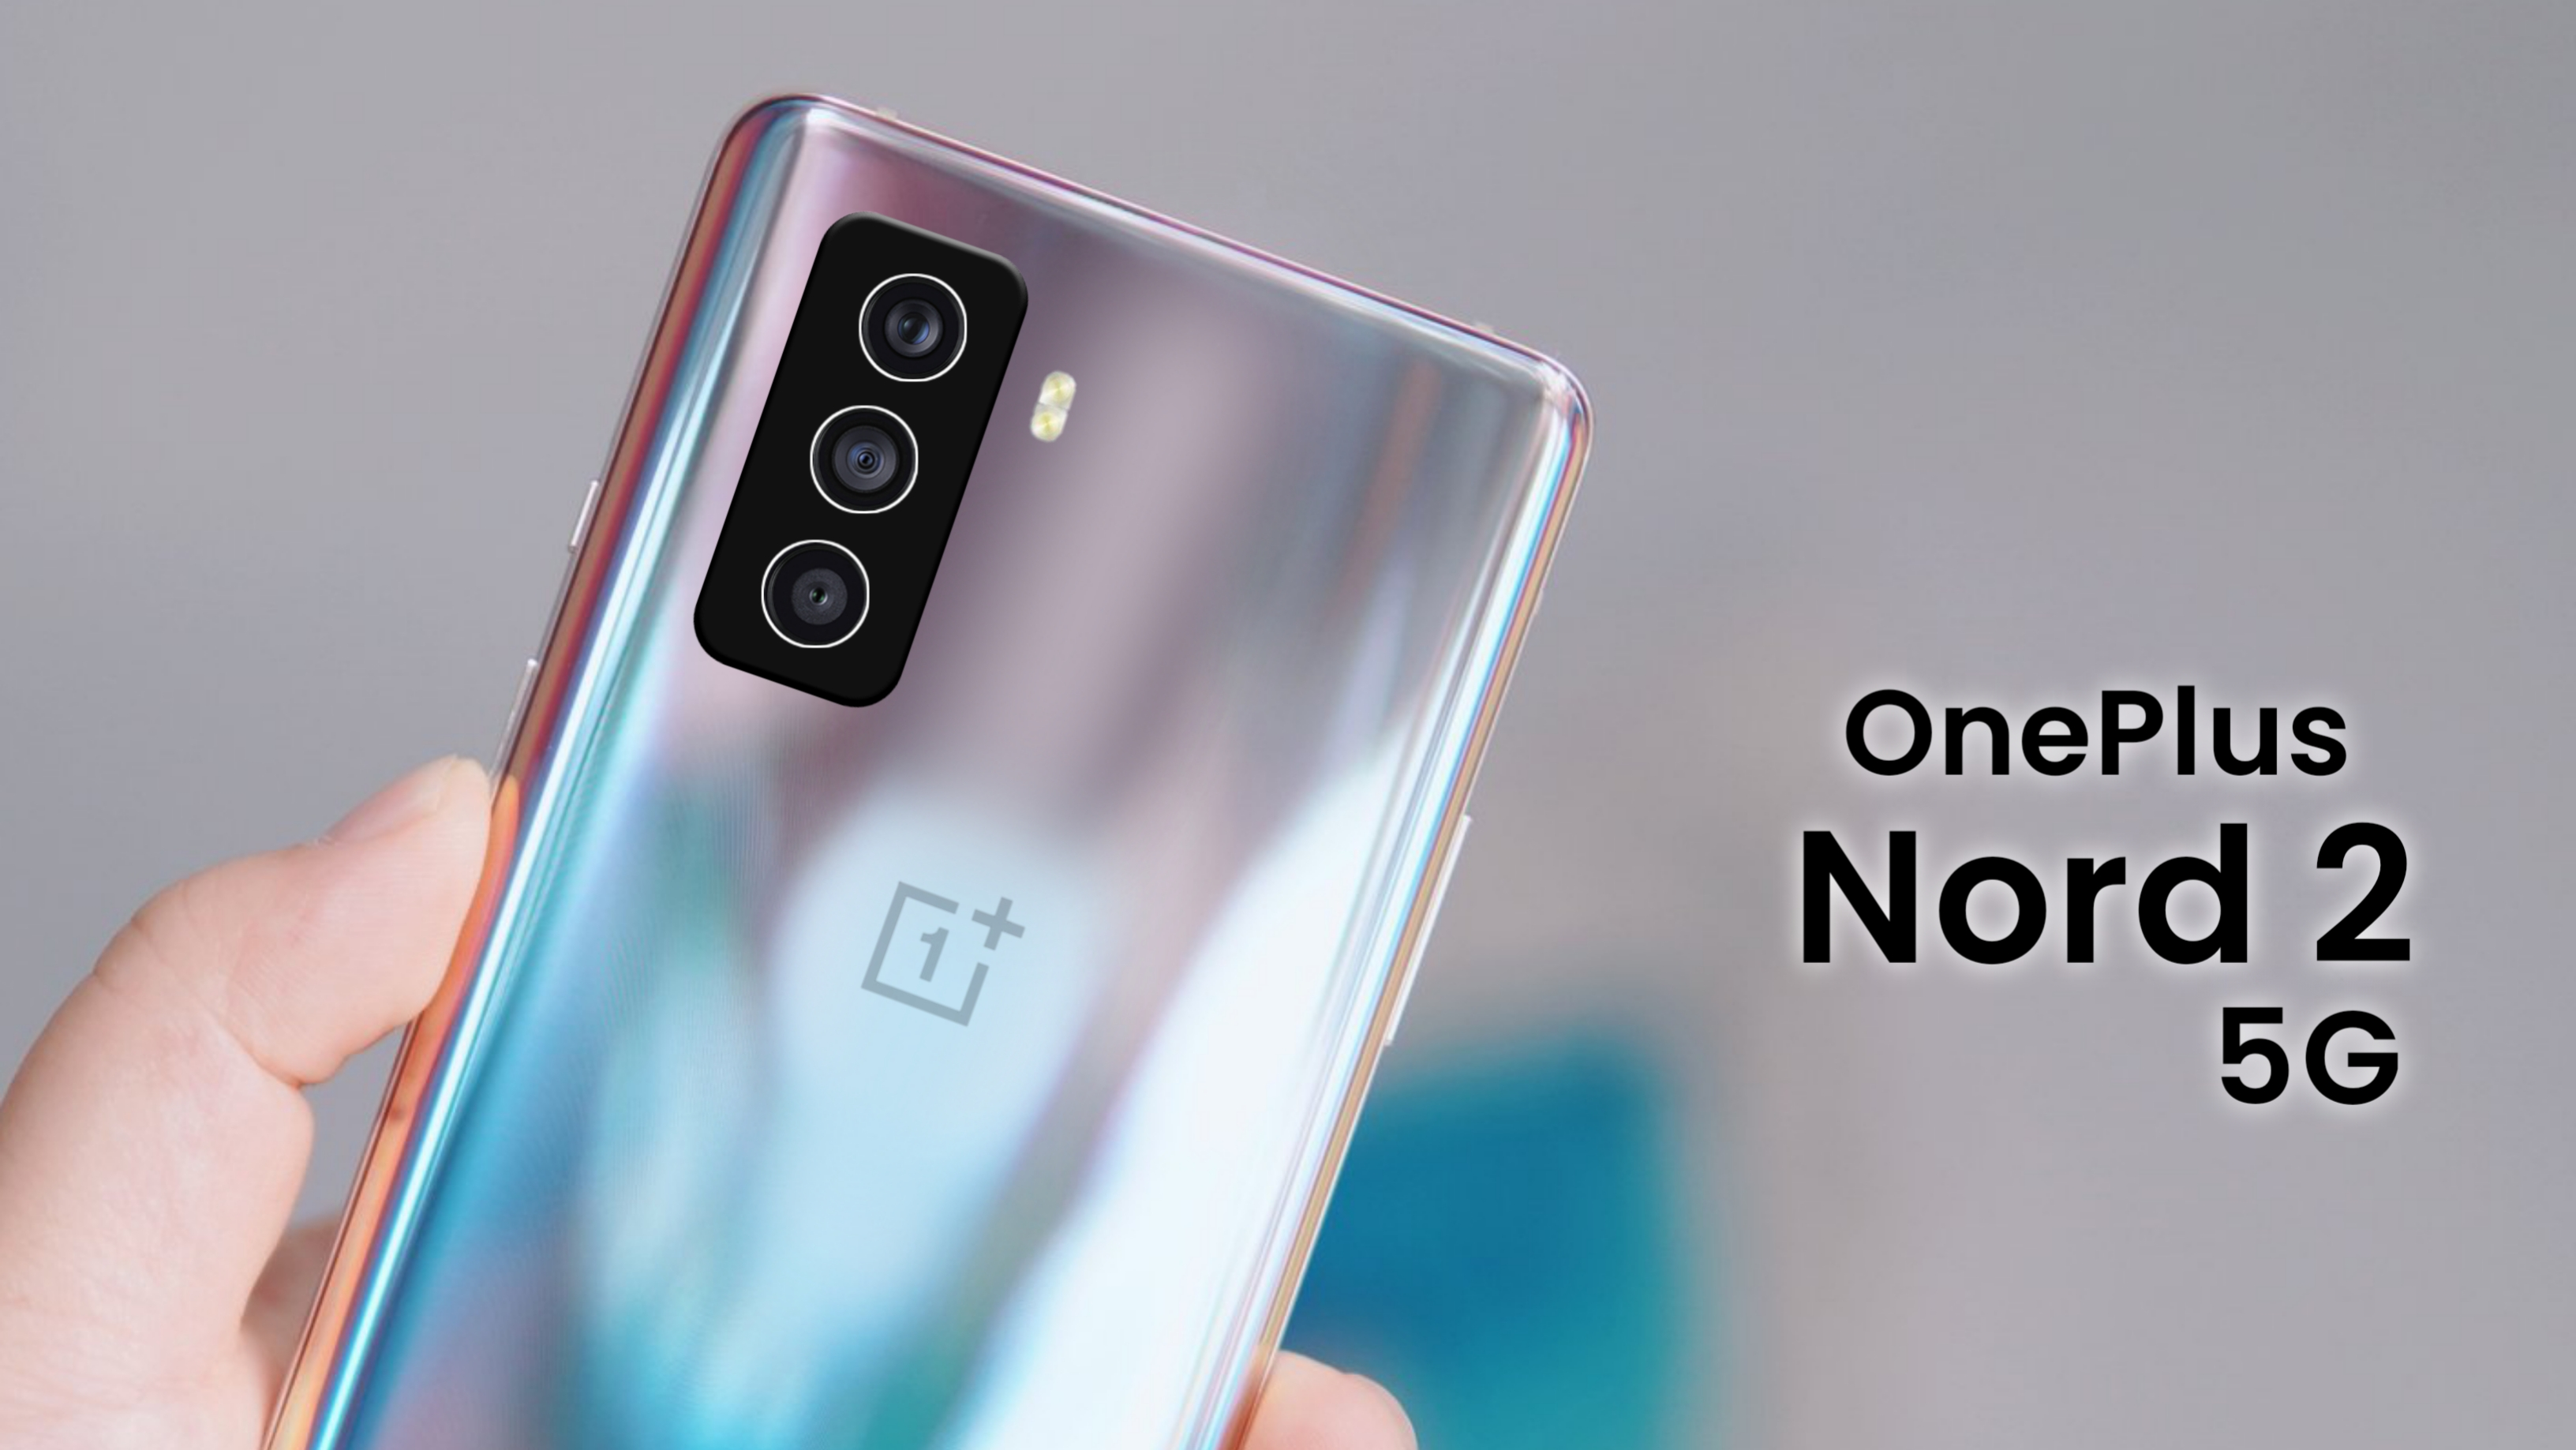 OnePlus Nord Lite 5G is a new budget phone with confirmed specifications